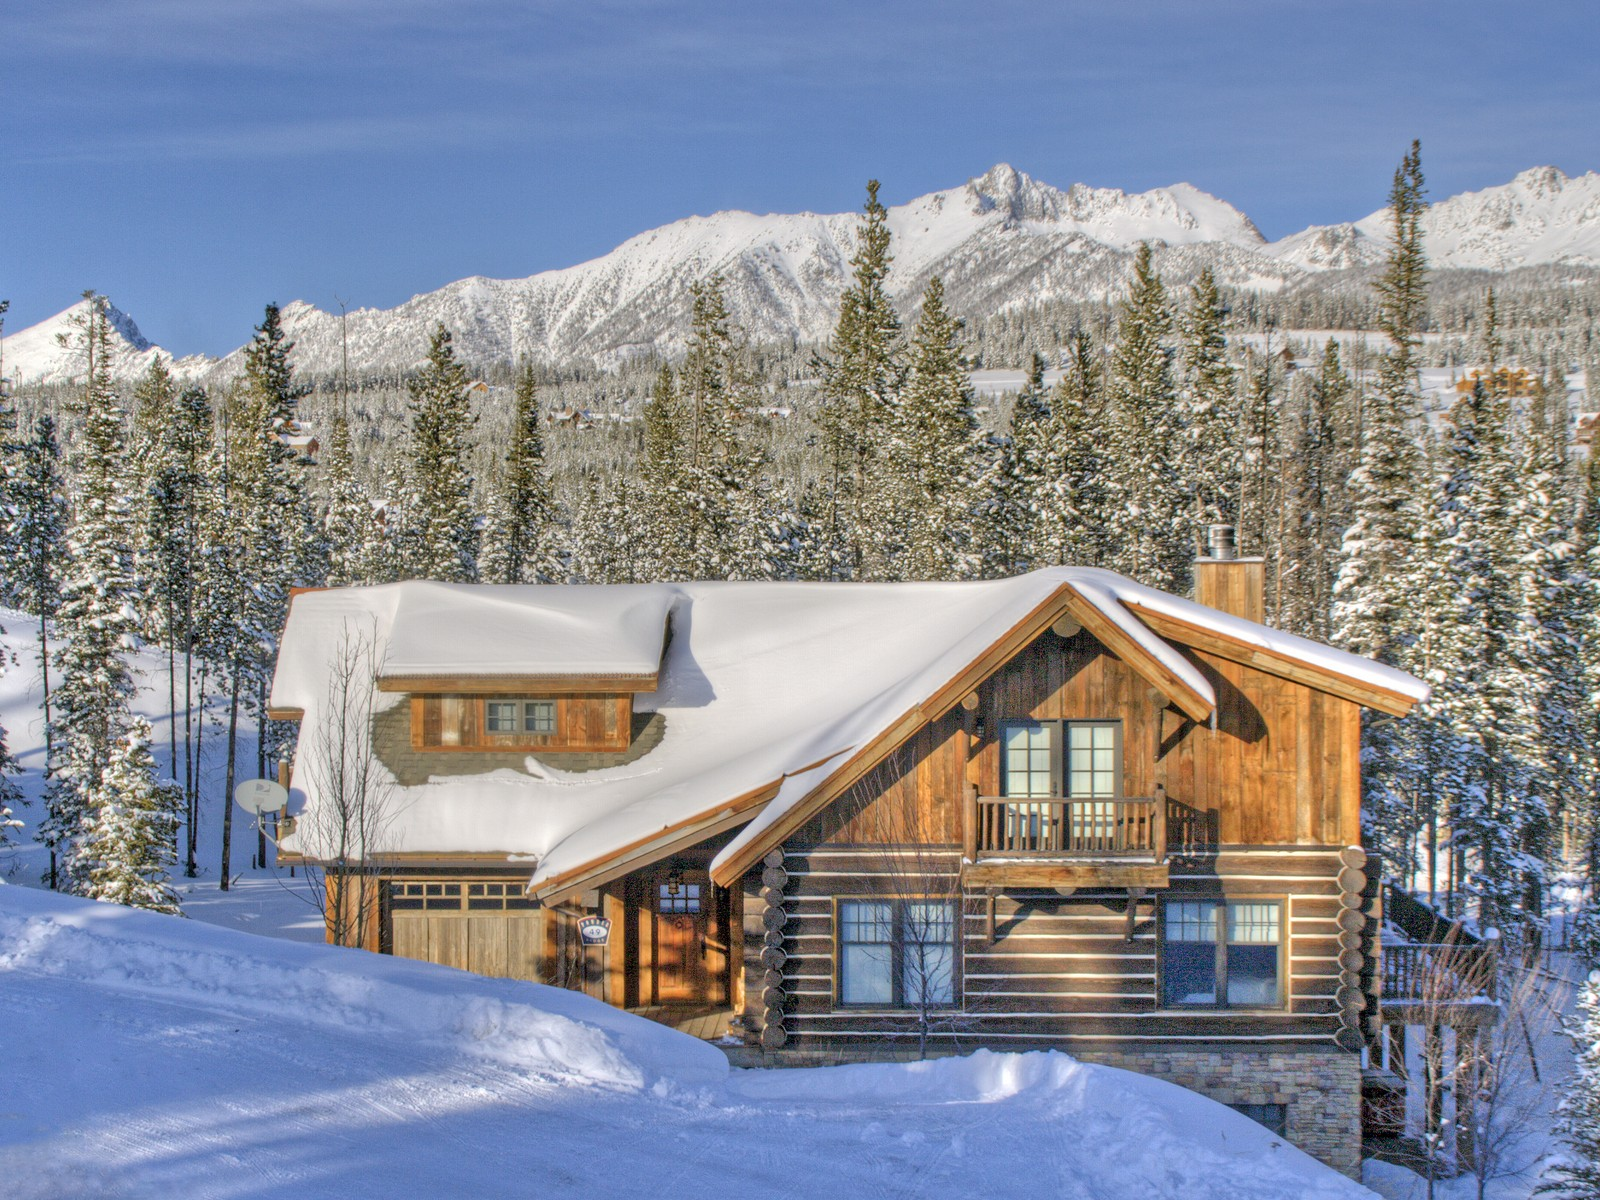 Property For Sale at Ski-in, out Powder Ridge Cabin